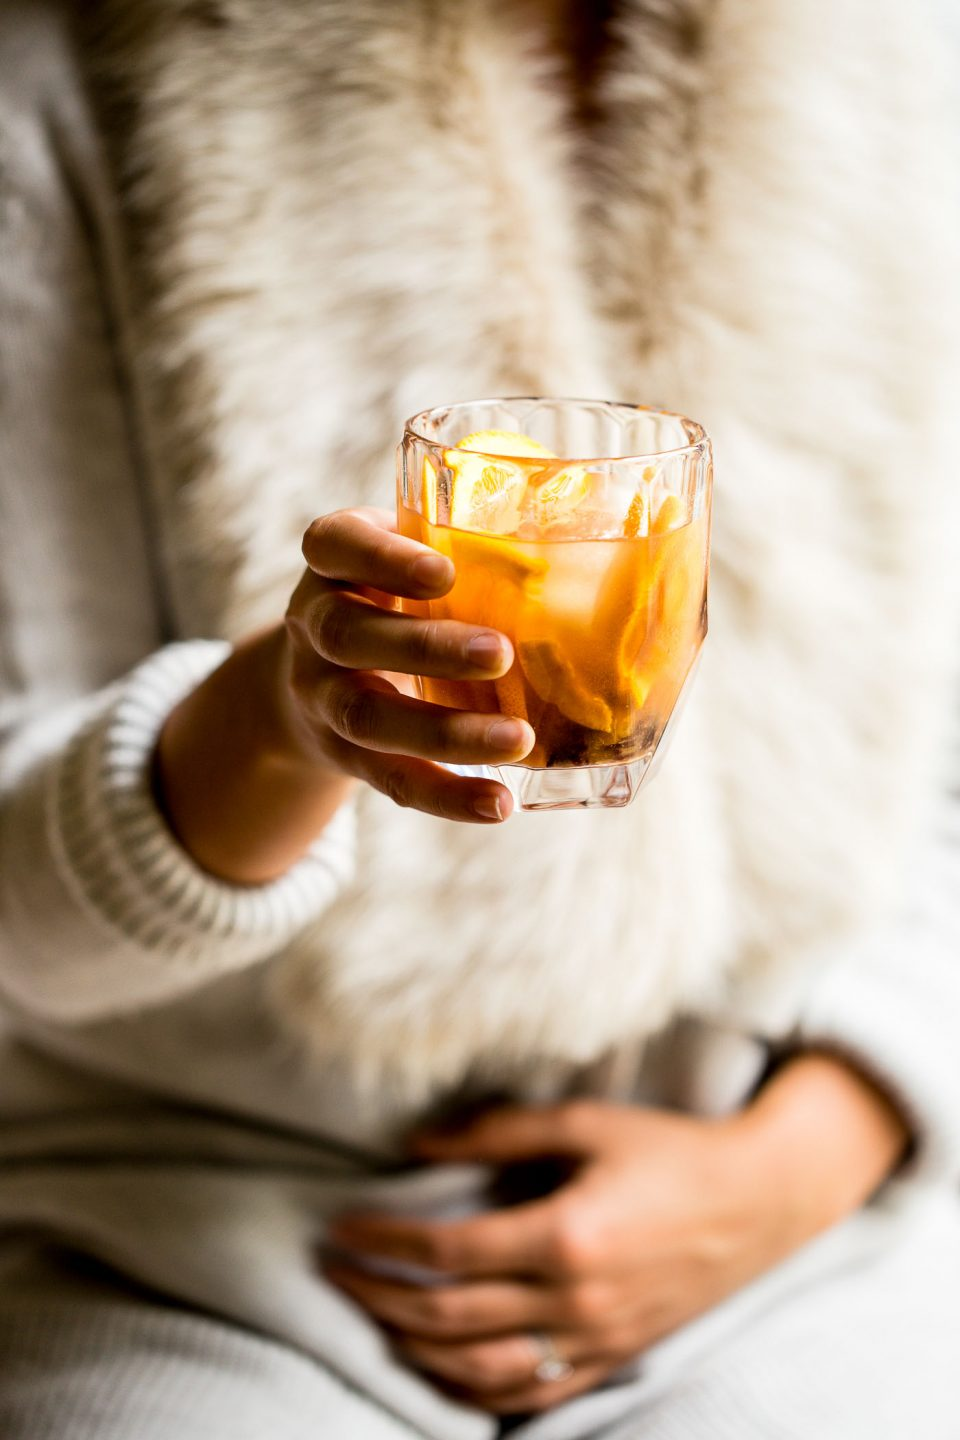 cozy bourbon old fashioneds sweetened with homemade sweet potato simple syrup. the perfect autumn cocktail for fall parties or a cozy date night at home. #playswellwithbutter #cocktail #cocktailrecipe #oldfashioned #oldfashionedrecipe #easydrinkrecipe #sweetpotatosimplesyrup #datenightathome